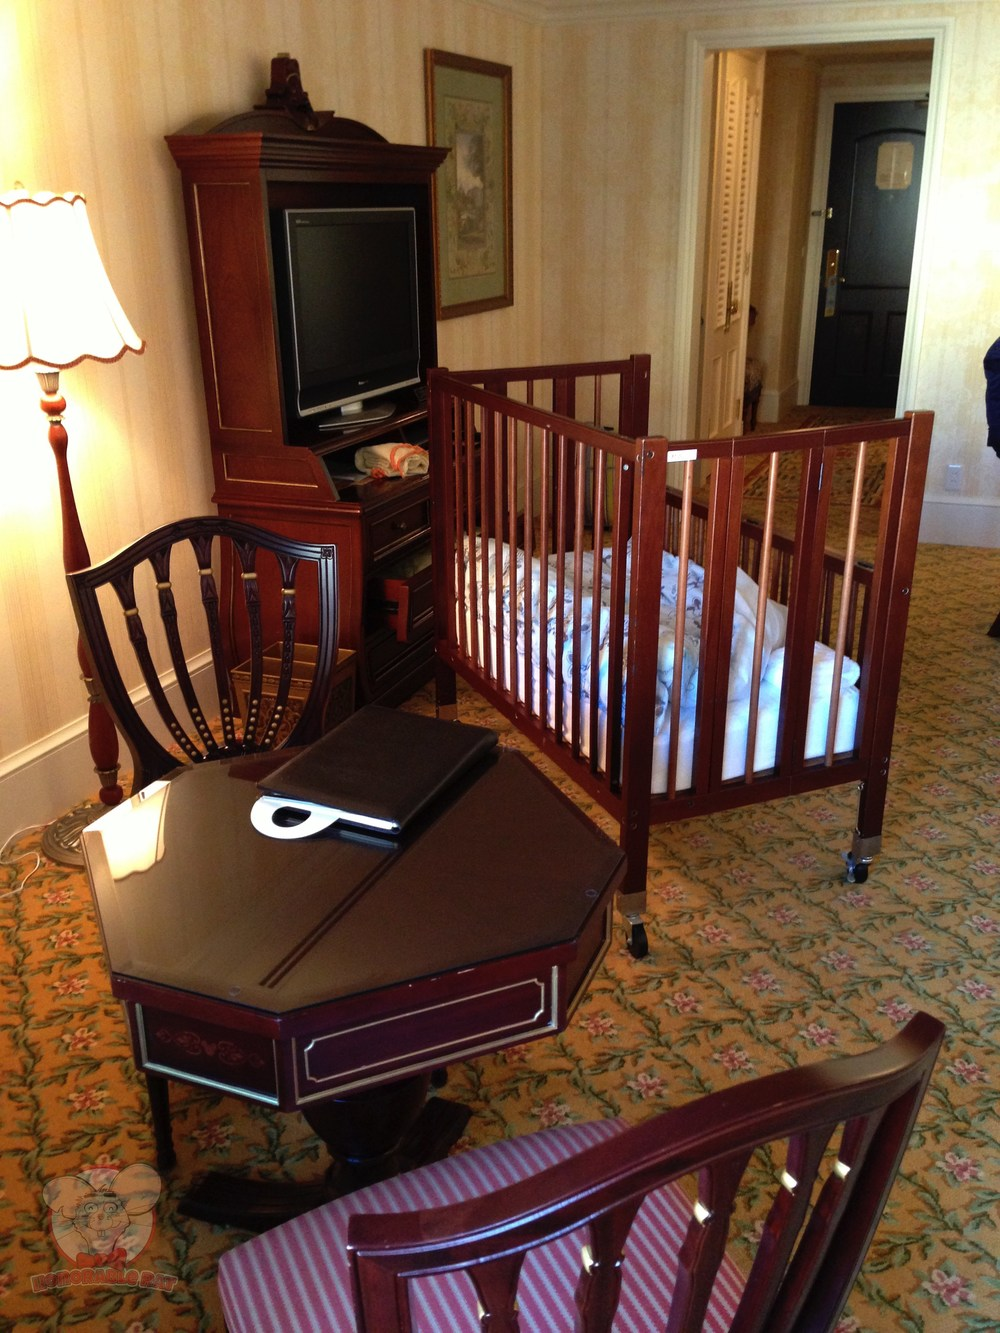 A baby cot for little Mahina